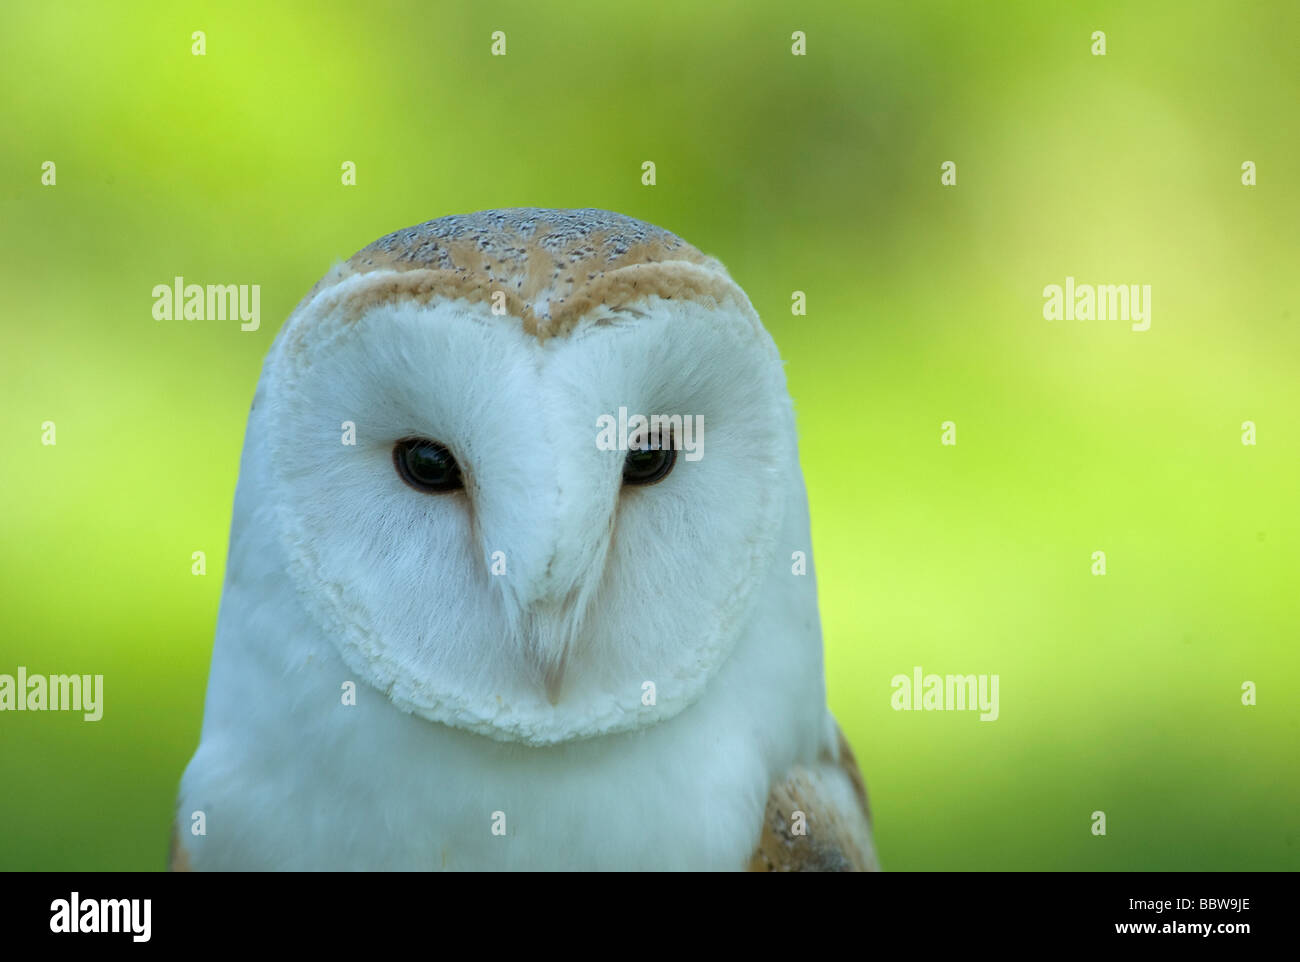 Barn owl Tyto alba facial disc showing eye and beak - Stock Image